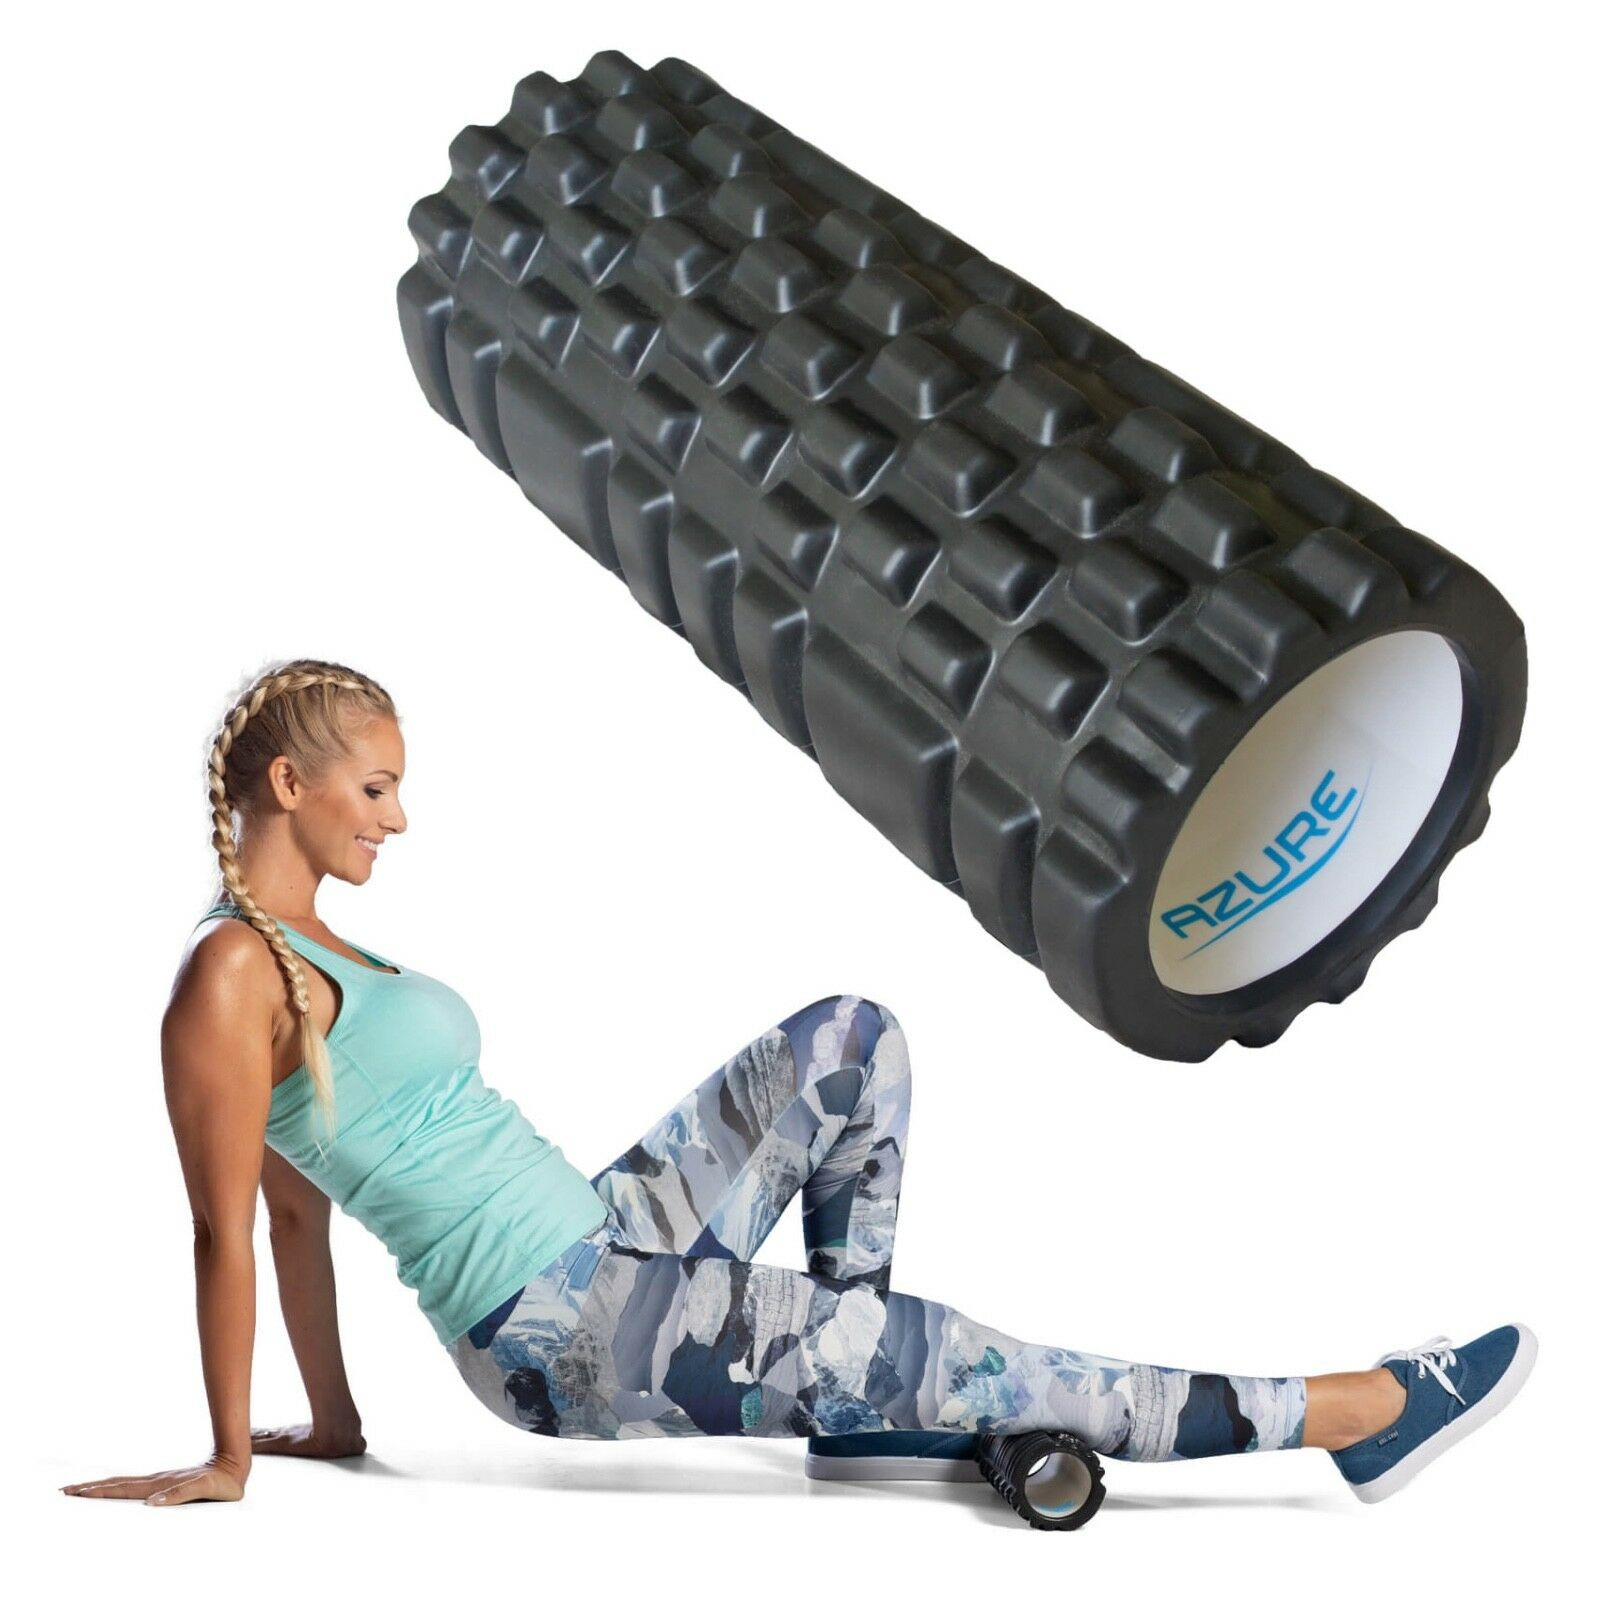 Yoga Muscle Rehab Trigger Point Massage Grille mousse rouleau Pilates Physio assesroy